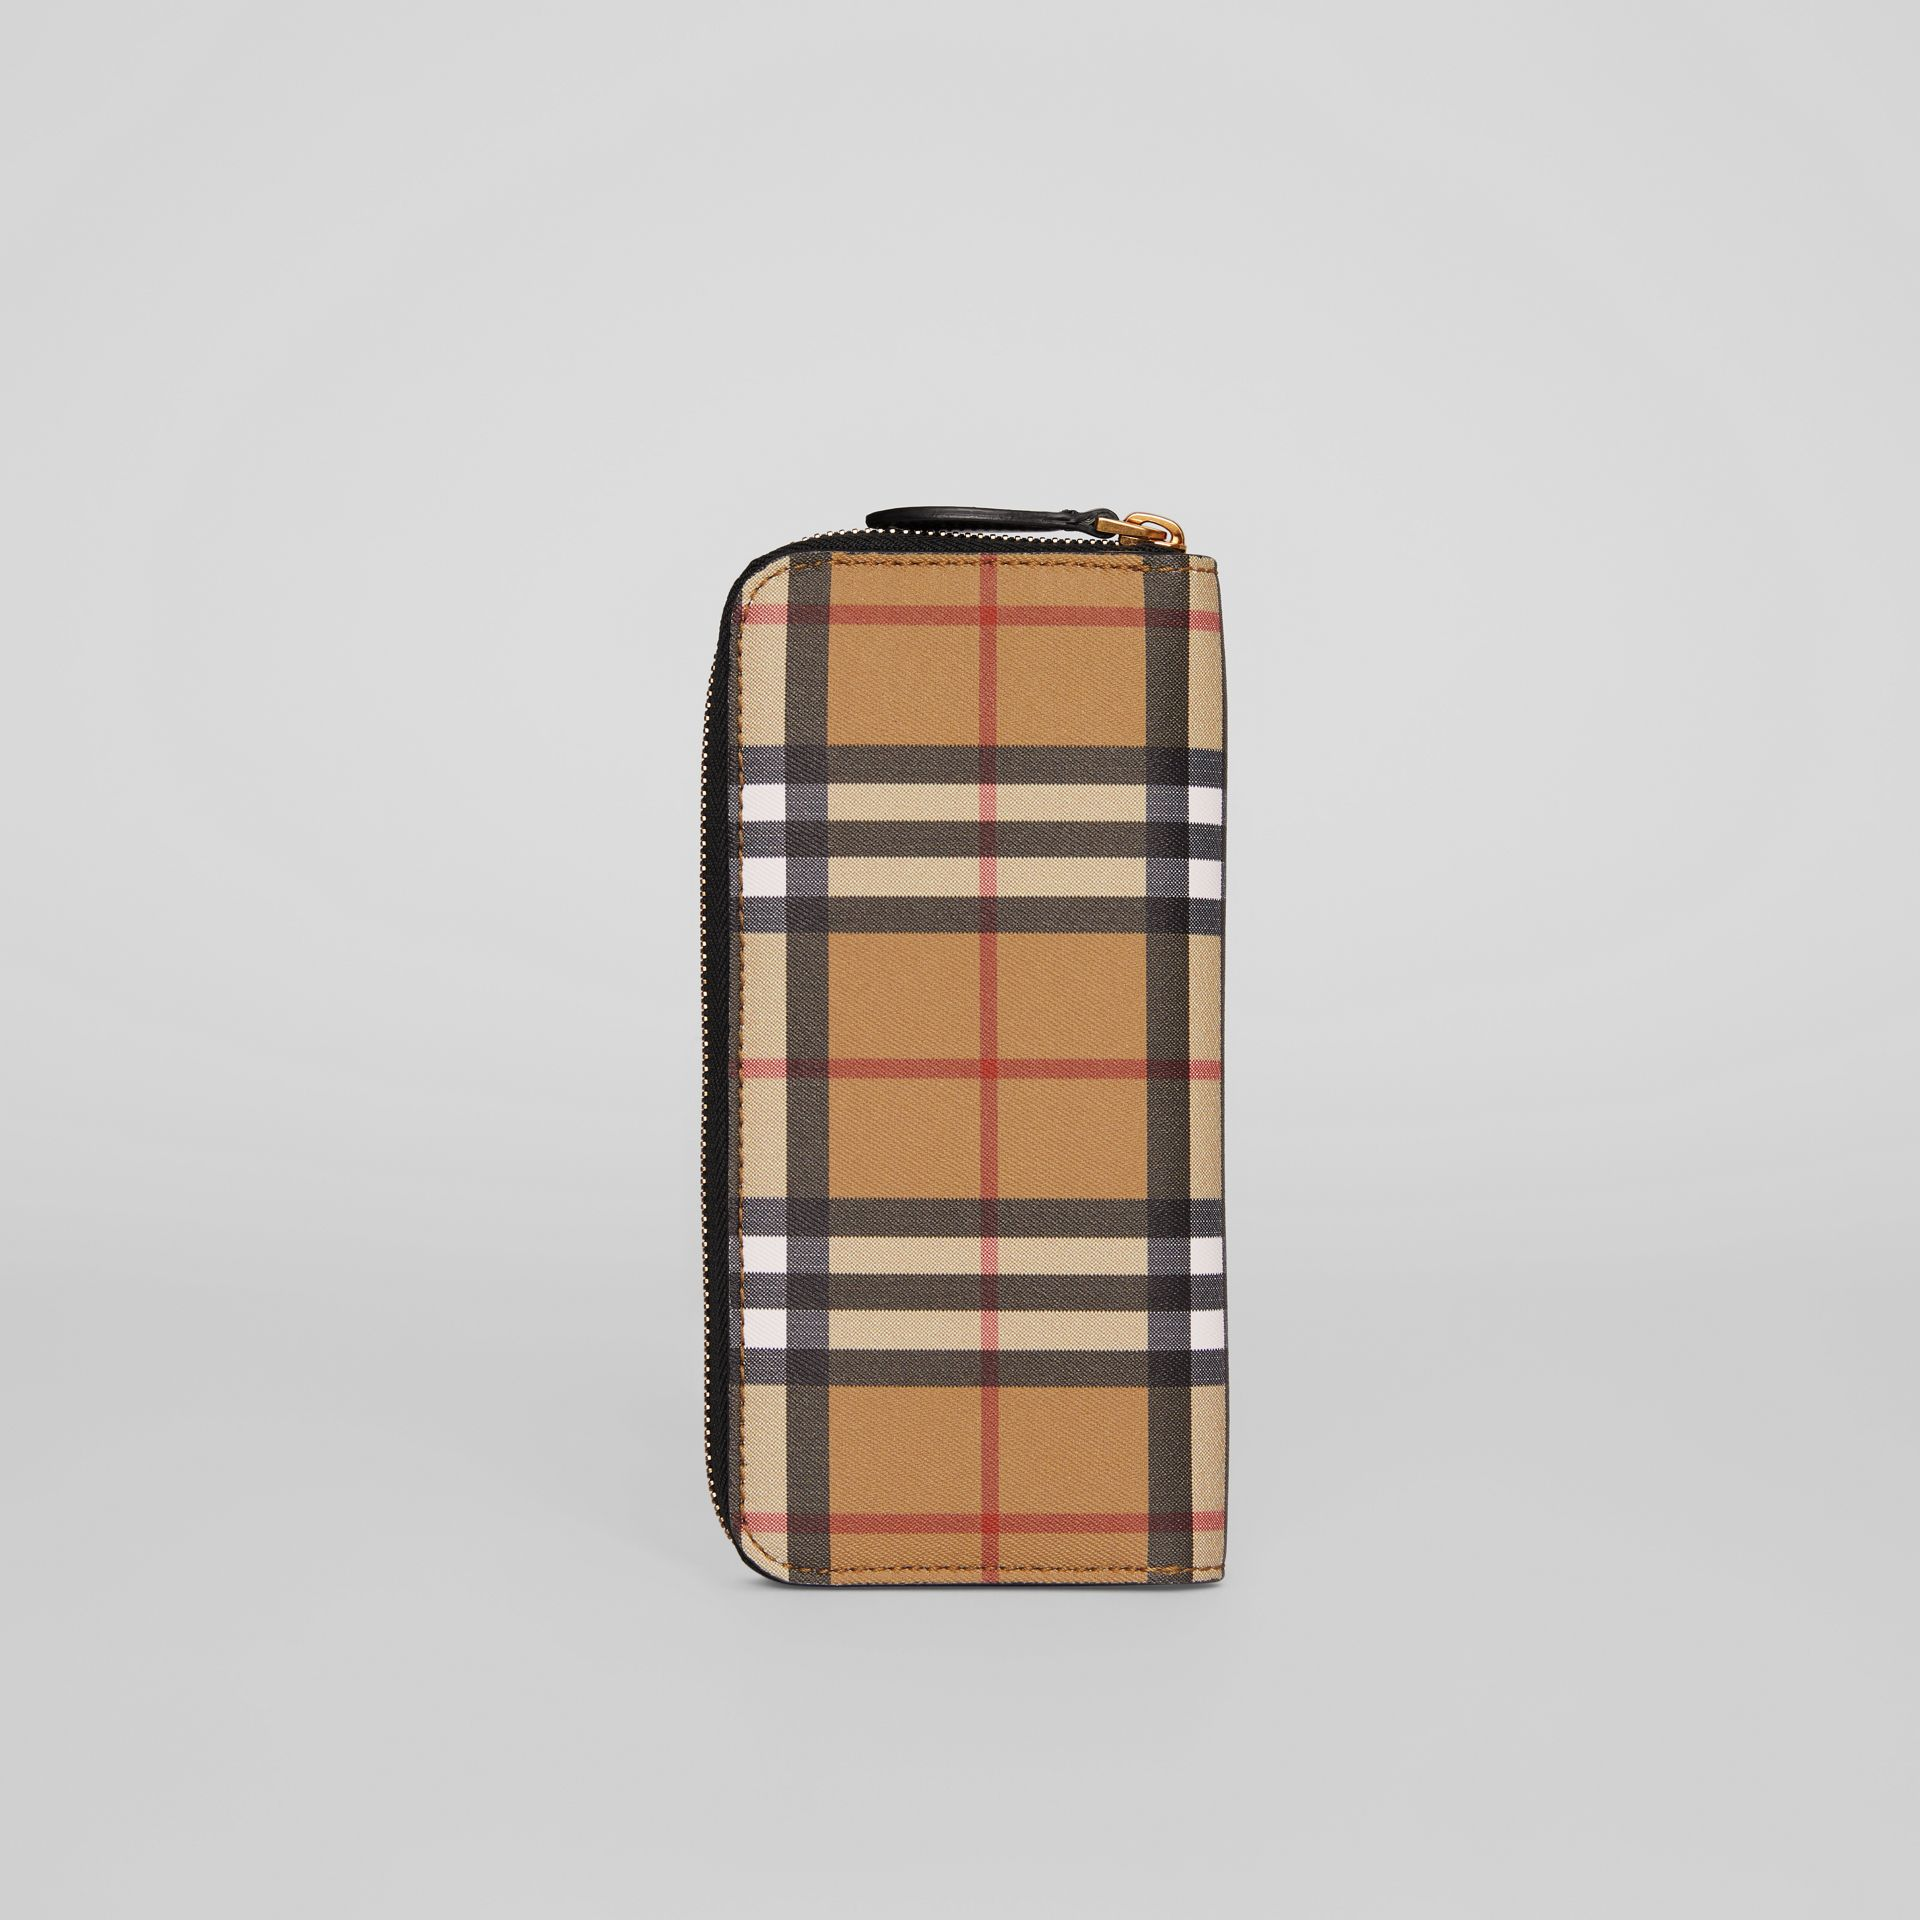 Vintage Check and Leather Ziparound Wallet in Black - Women | Burberry - gallery image 5